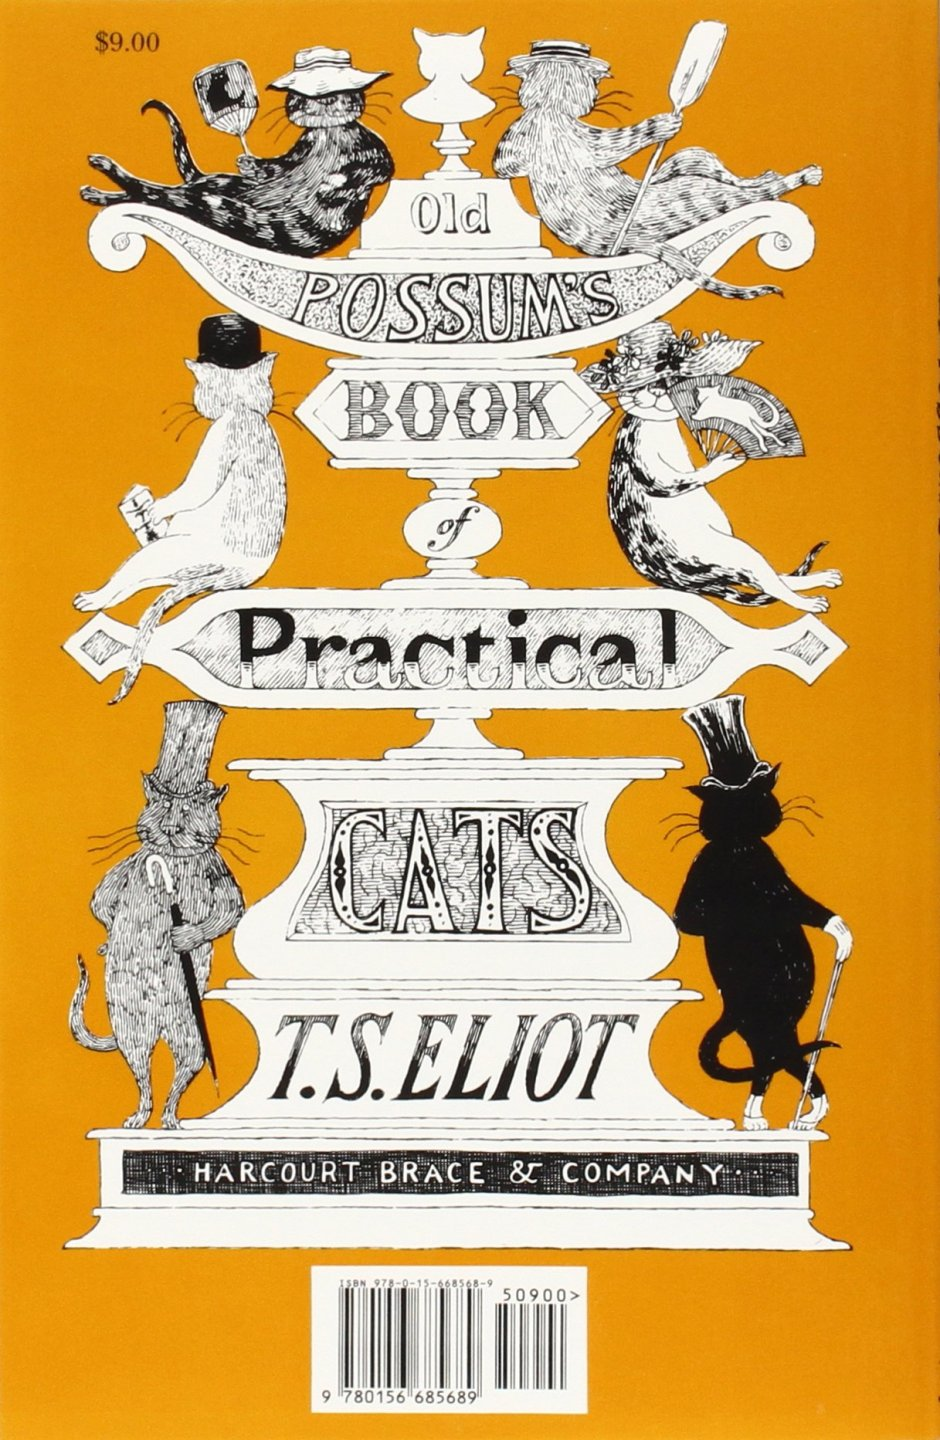 T.S. Elliot, Old Possums Book of Practical Cats (Harcourt Brace & Co).jpg